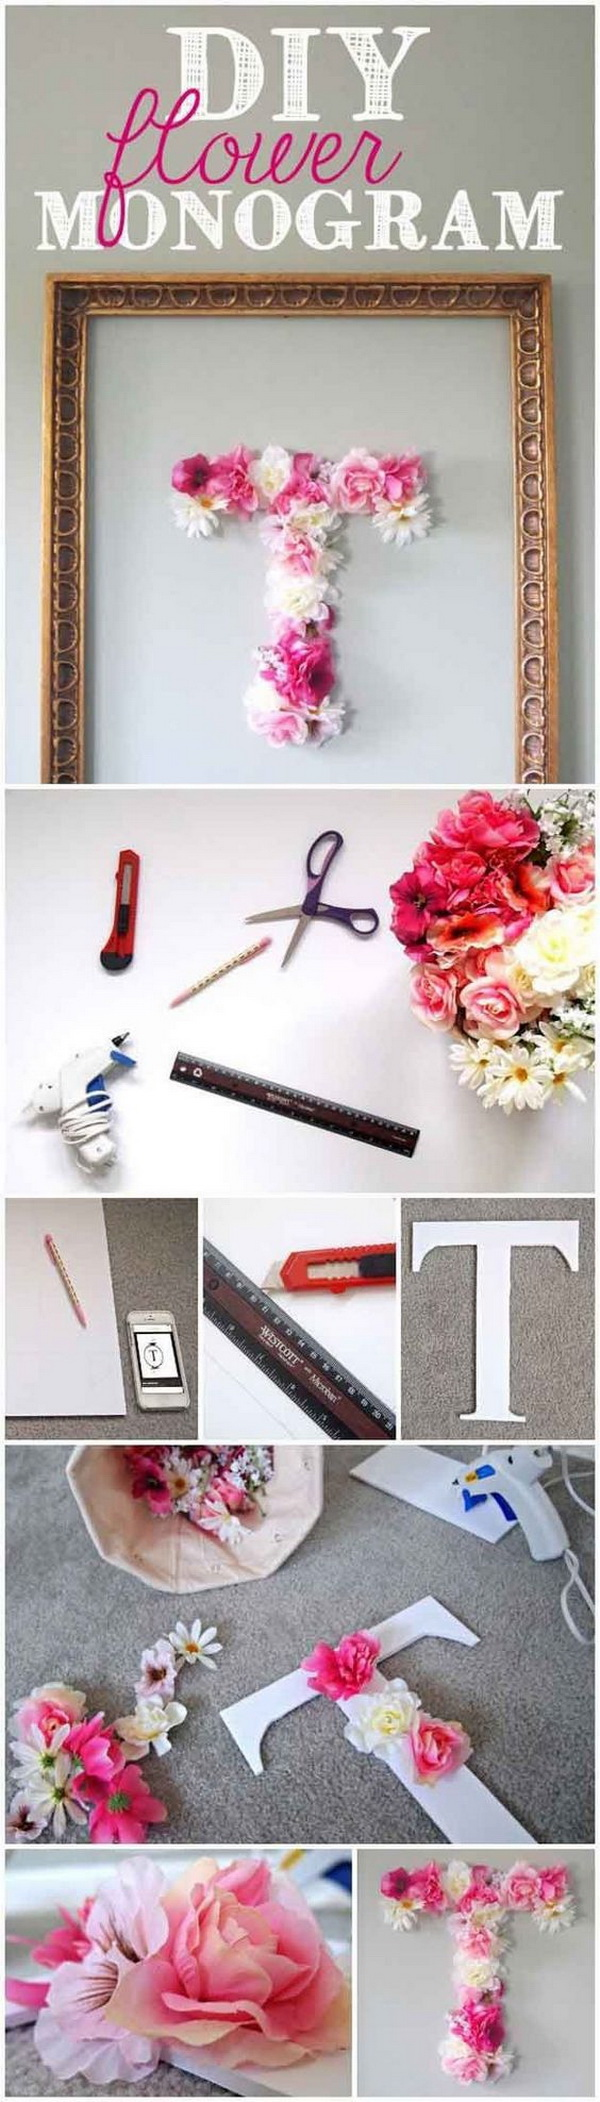 DIY Faux Flower Monogram Make A Pretty Decorative Letter With Flowers For Teen Girls